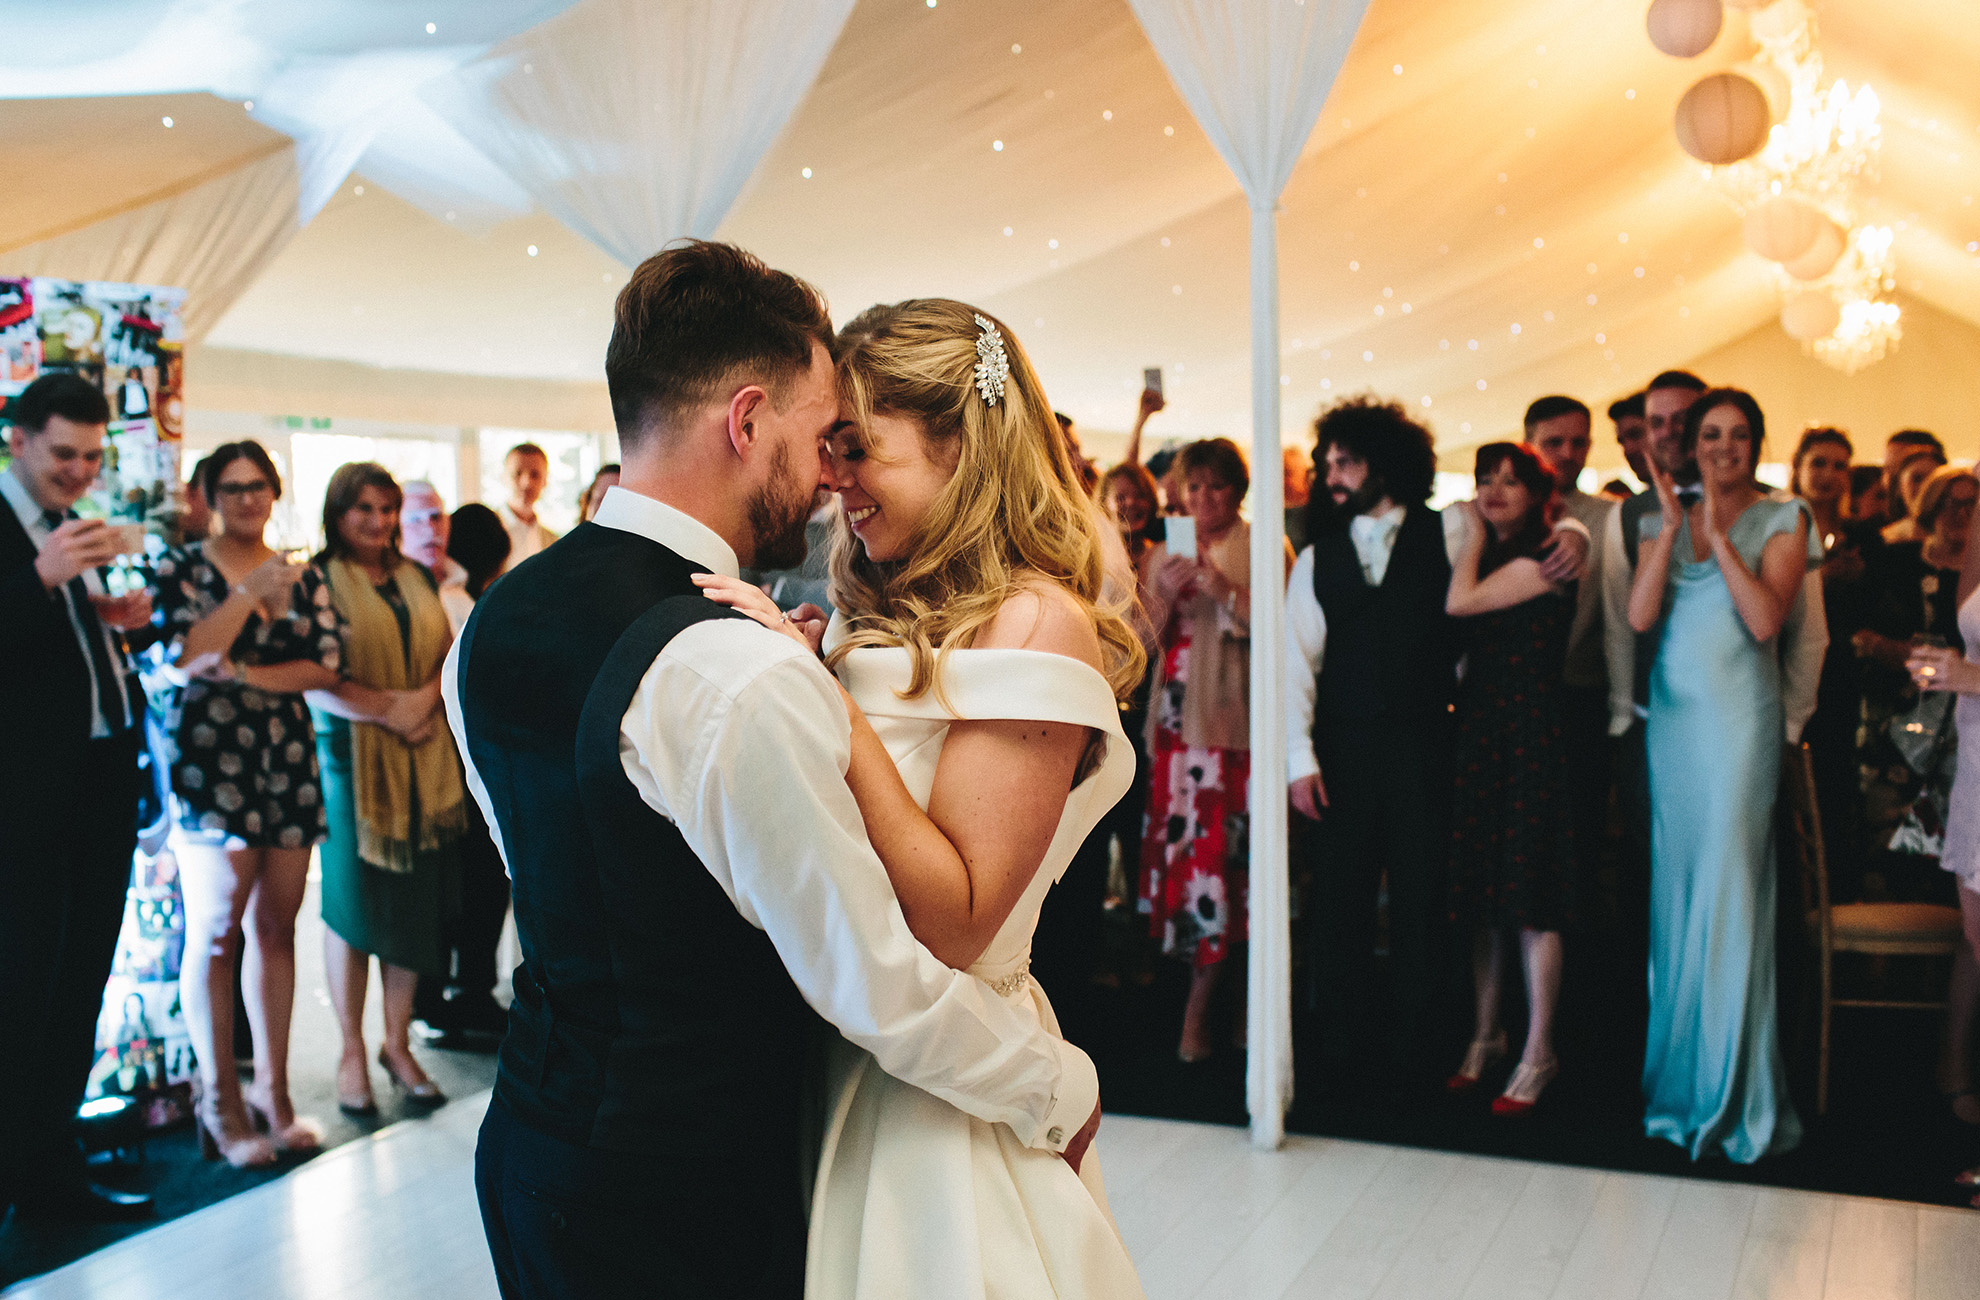 The bride and groom perform their first dance as husband and wife in front of guests at Combermere Abbey